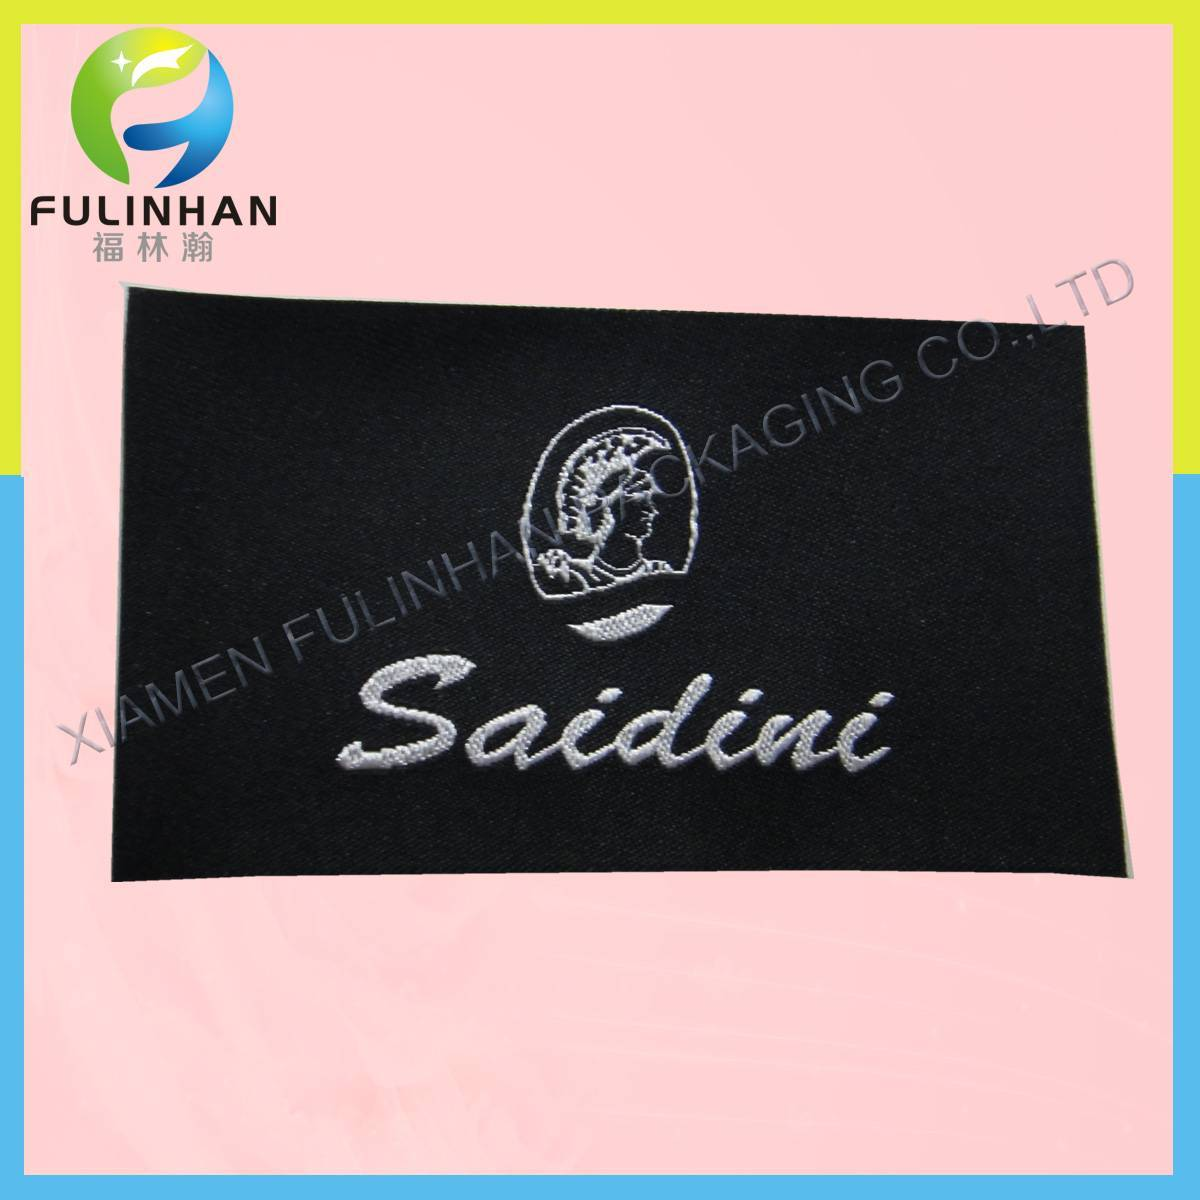 Custom woven clothing label/clothing woven label/woven label for clothing